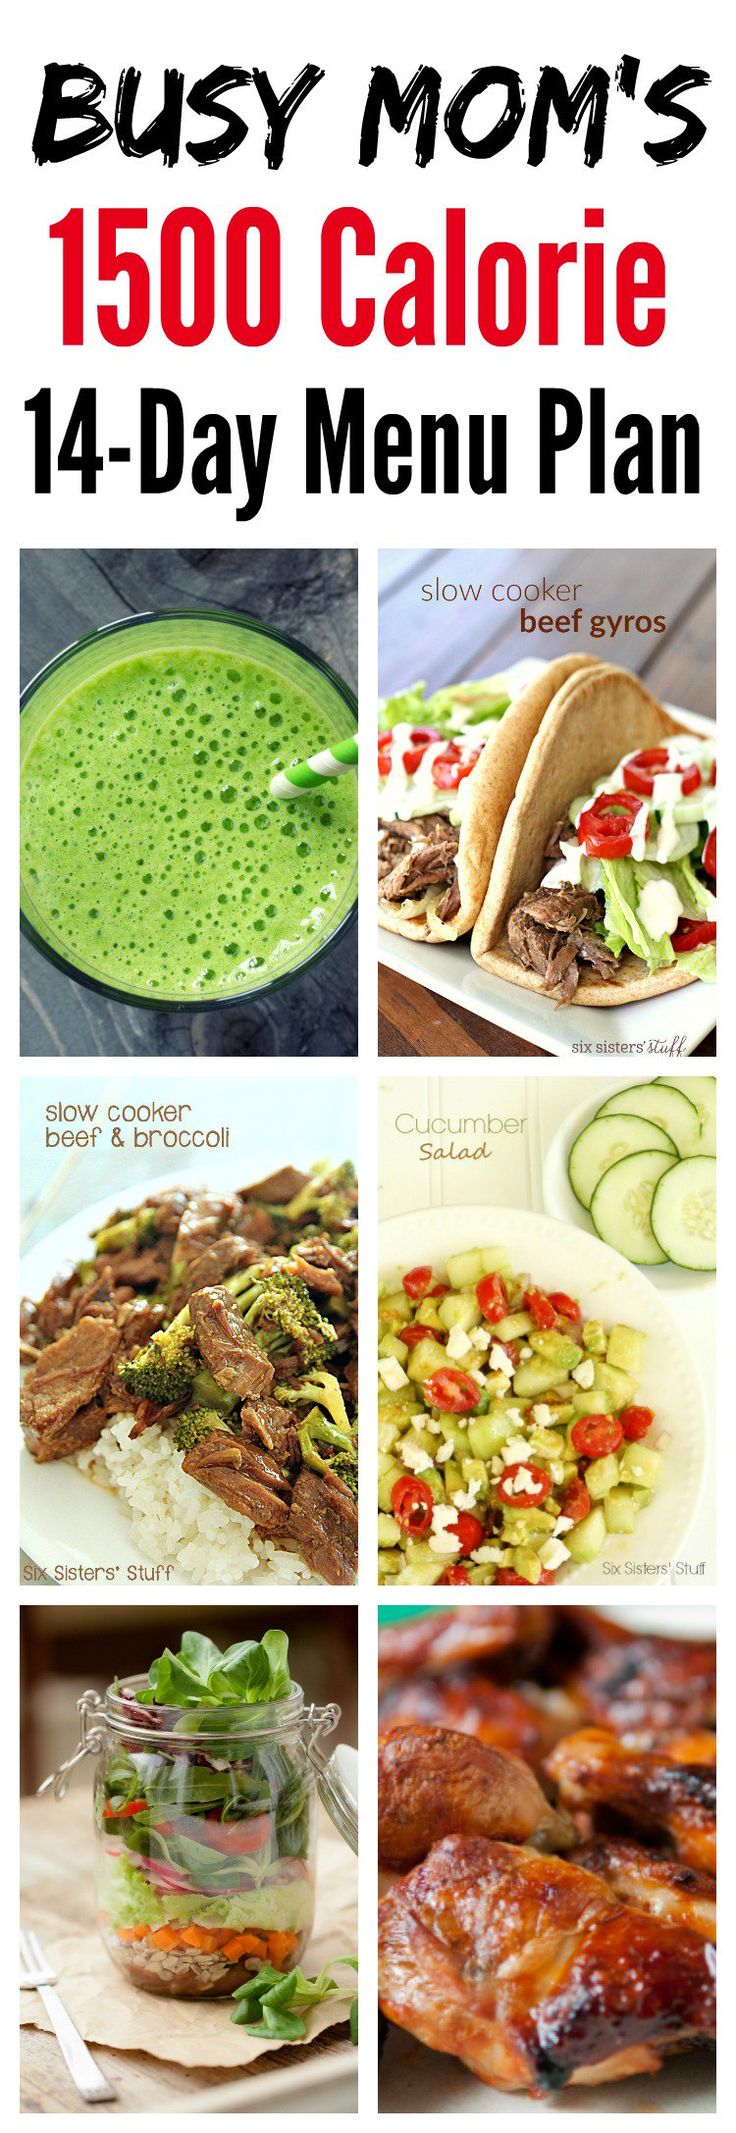 1500 Calorie Healthy Eating Plan for Busy Moms